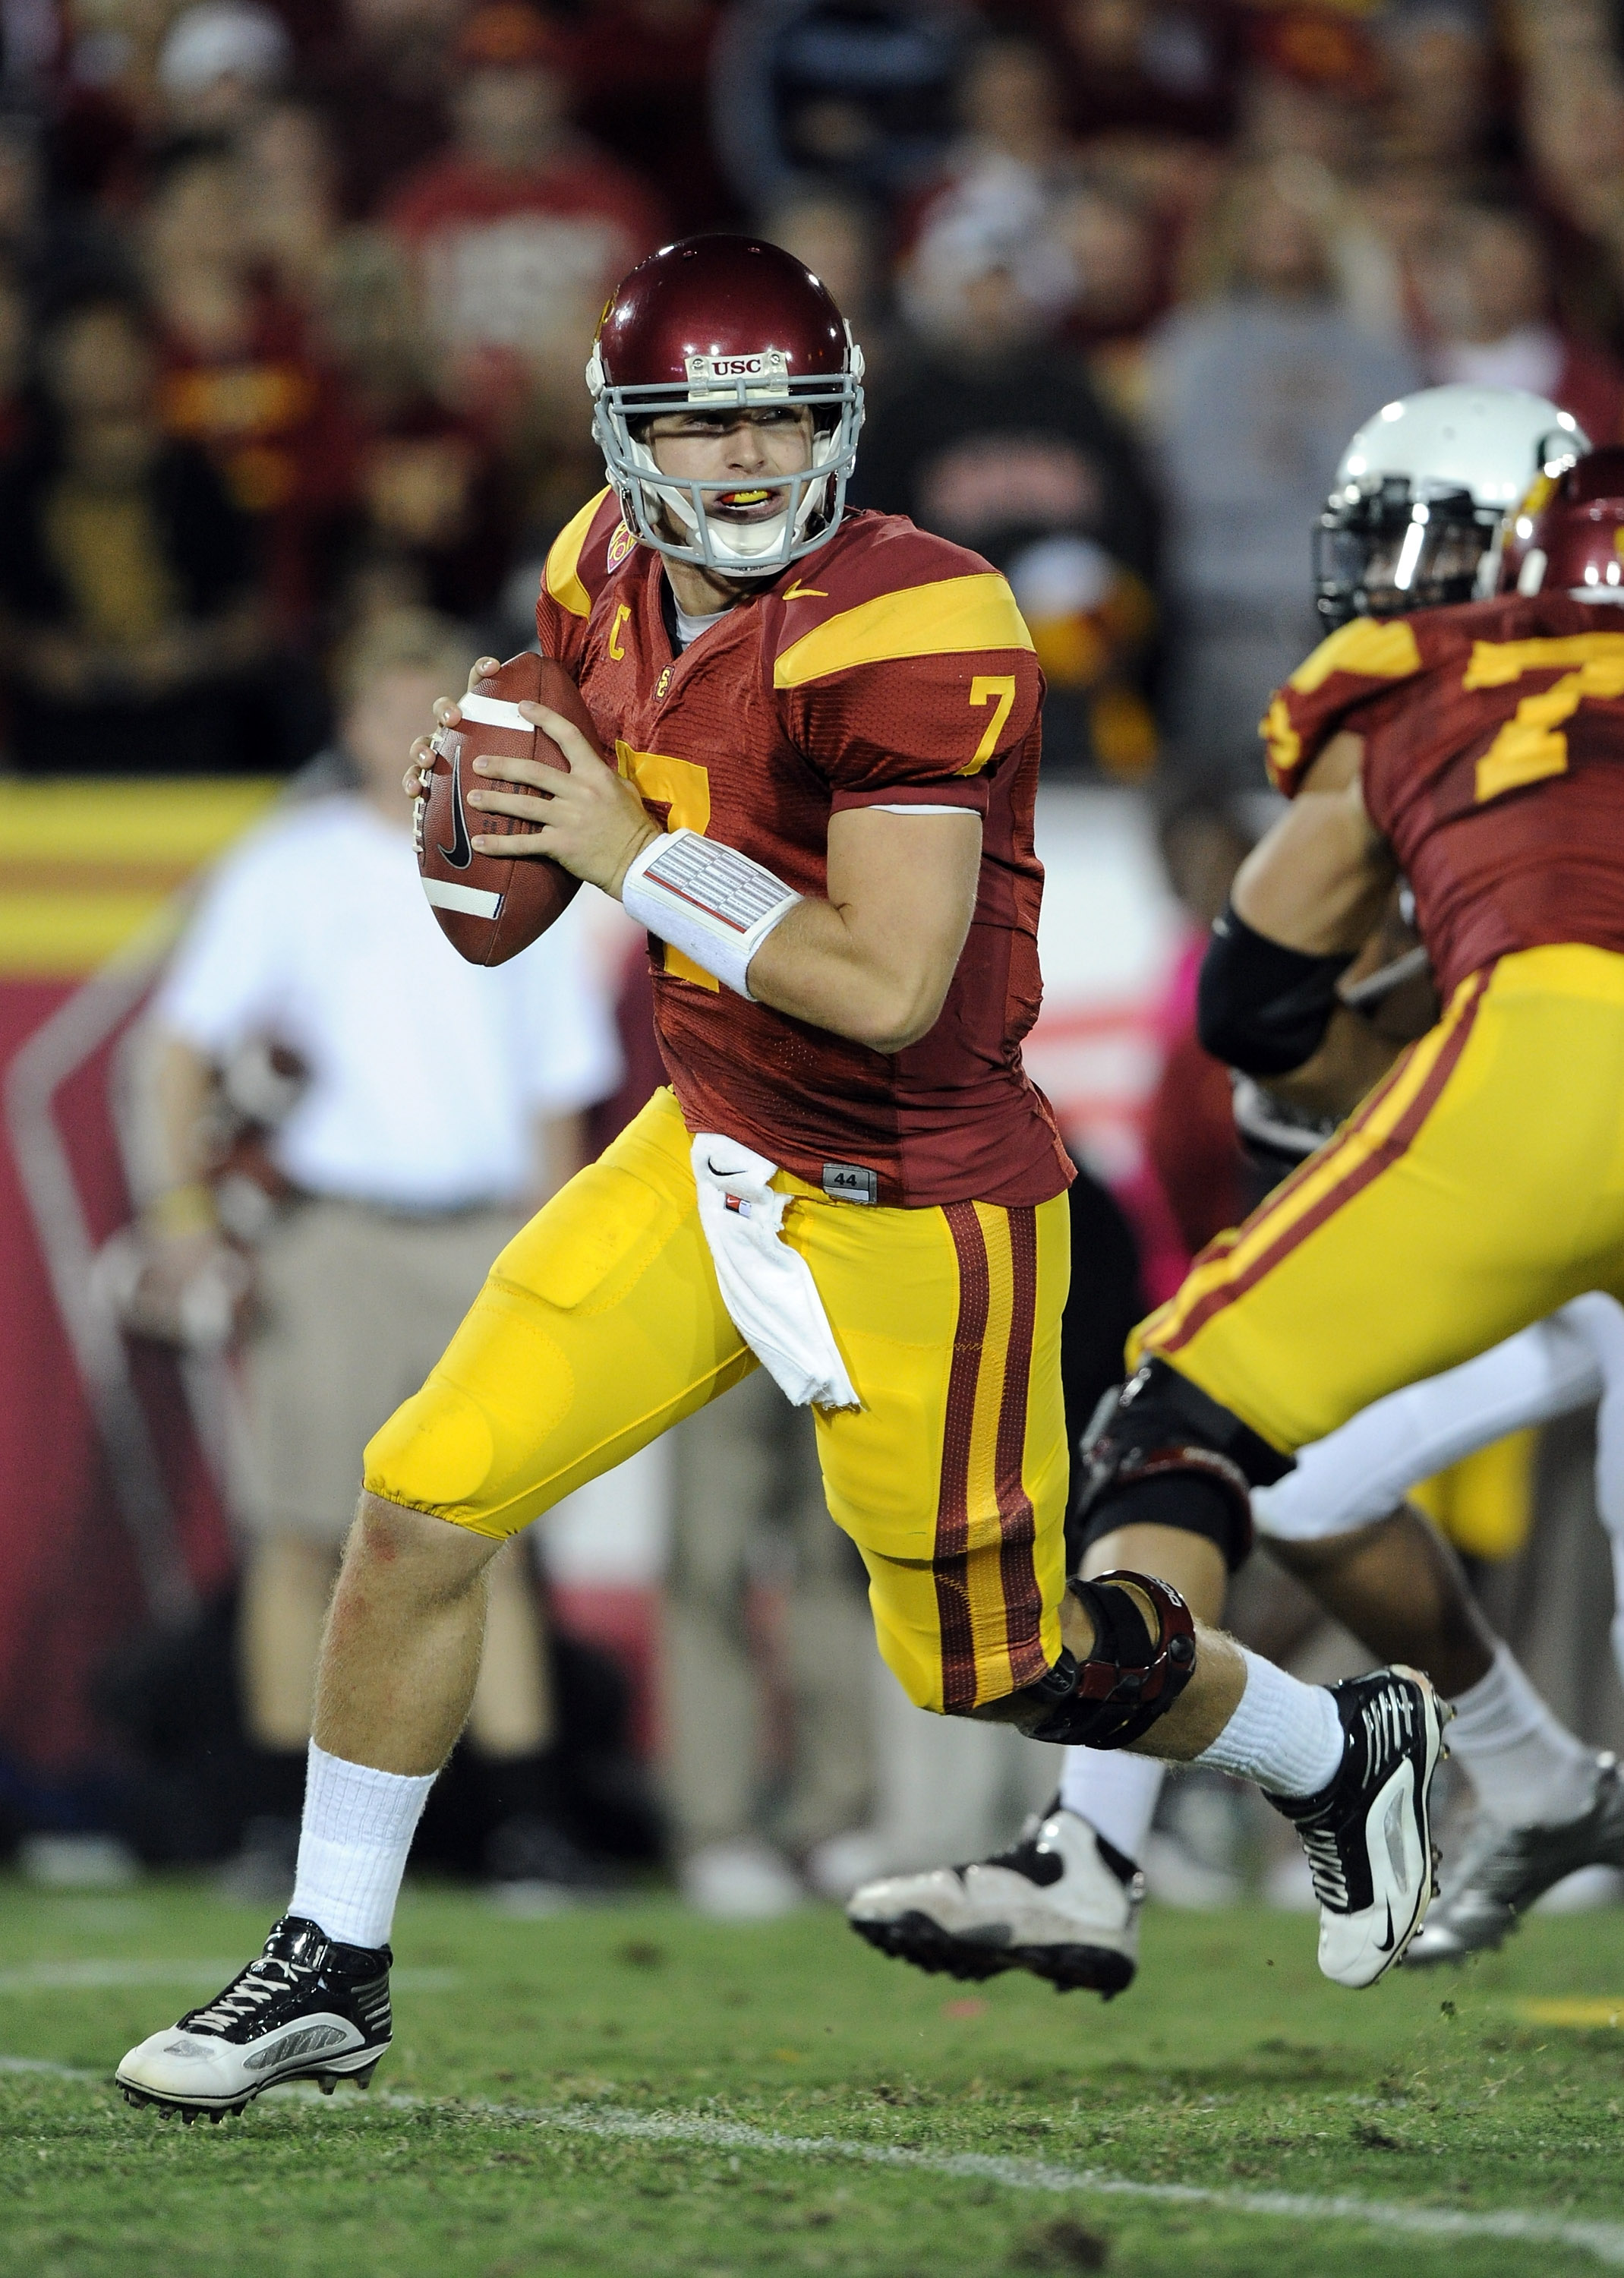 Matt Barkley will be back to lead USC in 2011